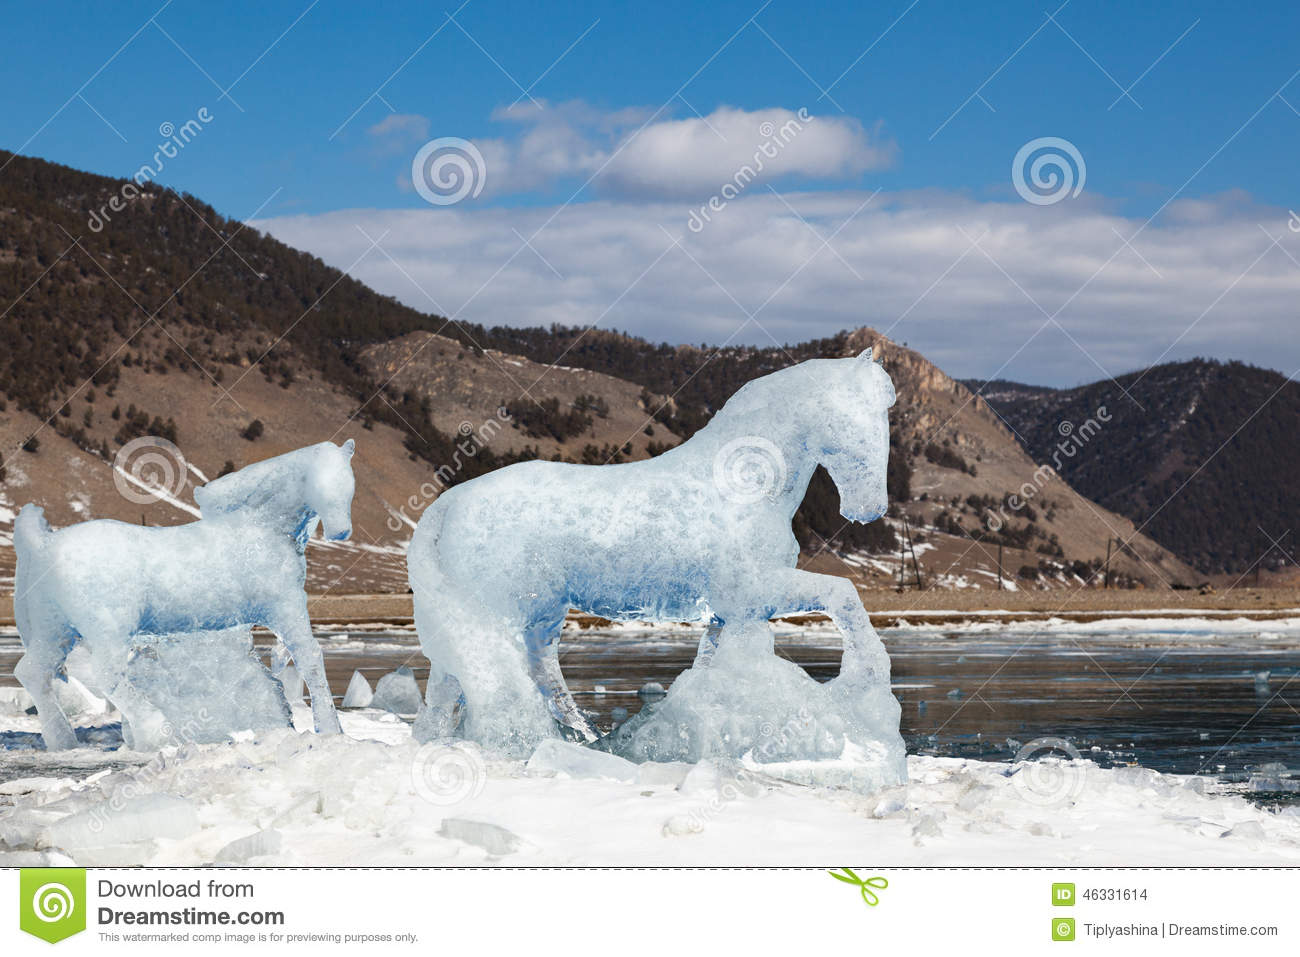 221 Horse Ice Sculpture Photos Free Royalty Free Stock Photos From Dreamstime